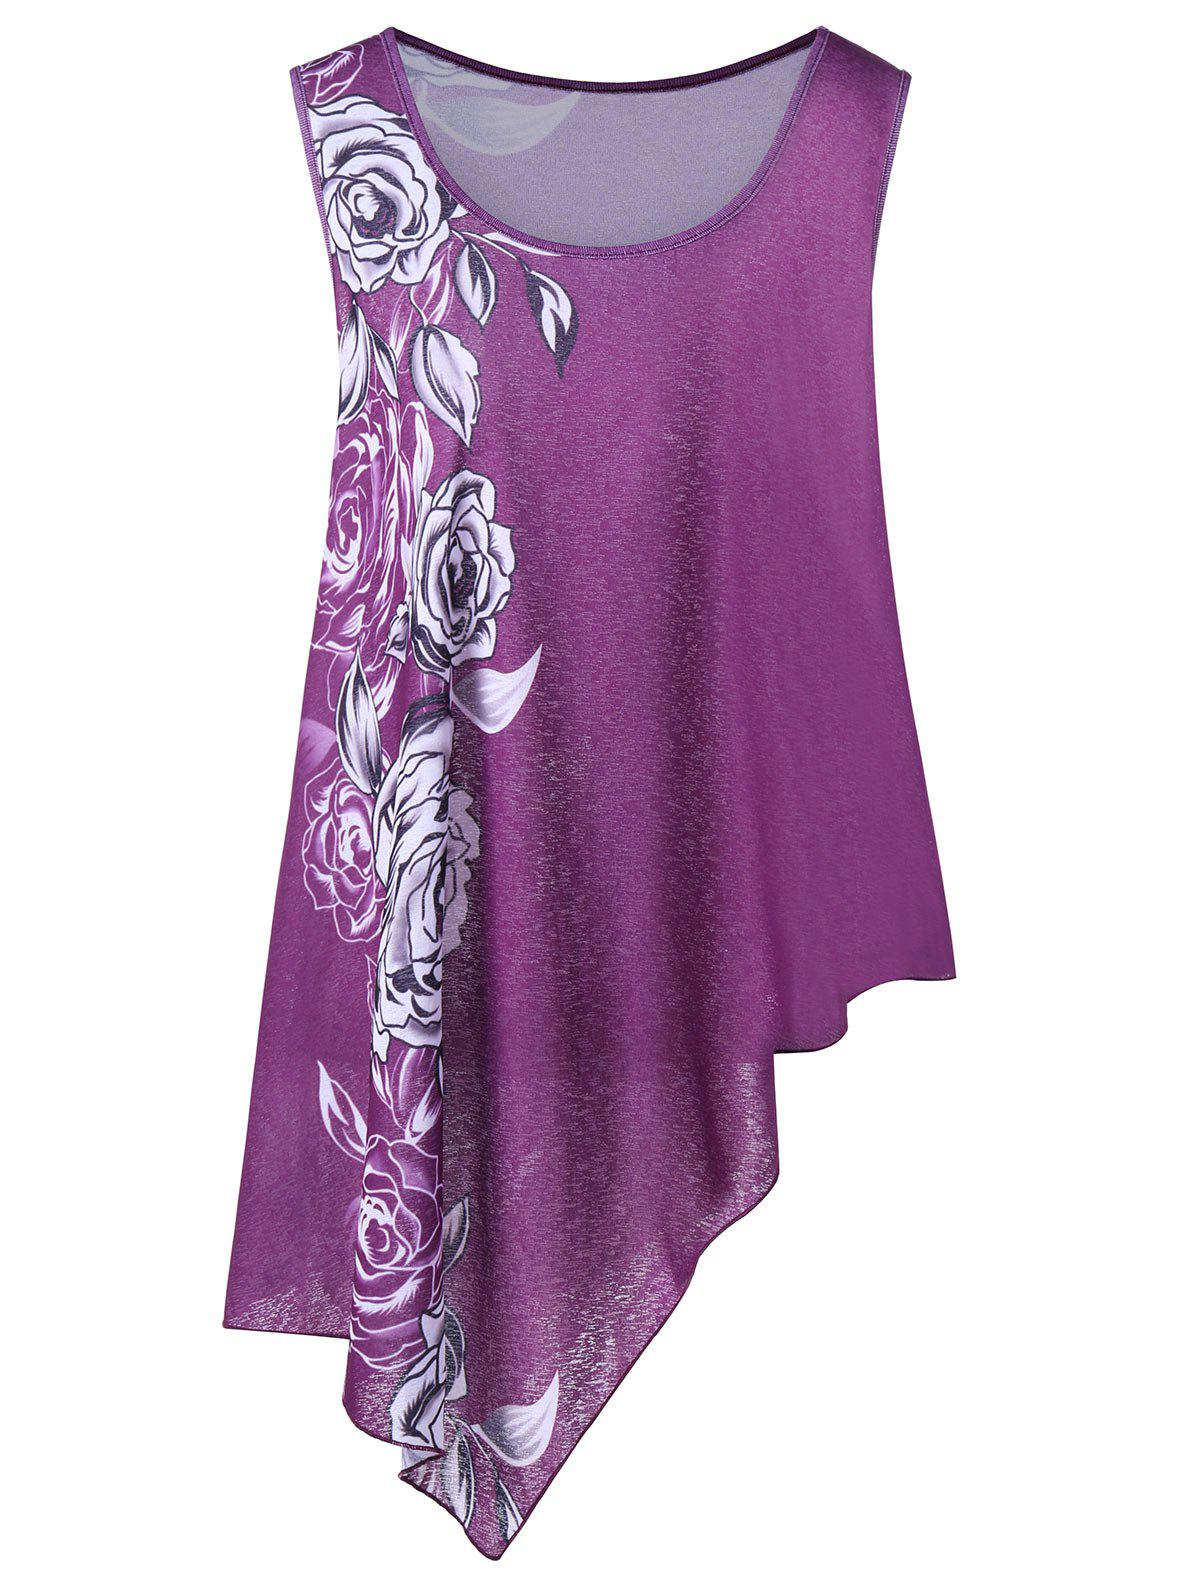 Plus Size Floral Asymmetric Tank TopWOMEN<br><br>Size: 5XL; Color: PURPLE; Material: Polyester; Shirt Length: Long; Sleeve Length: Sleeveless; Collar: Scoop Neck; Style: Casual; Season: Summer; Pattern Type: Floral; Weight: 0.2600kg; Package Contents: 1 x Tank Top;